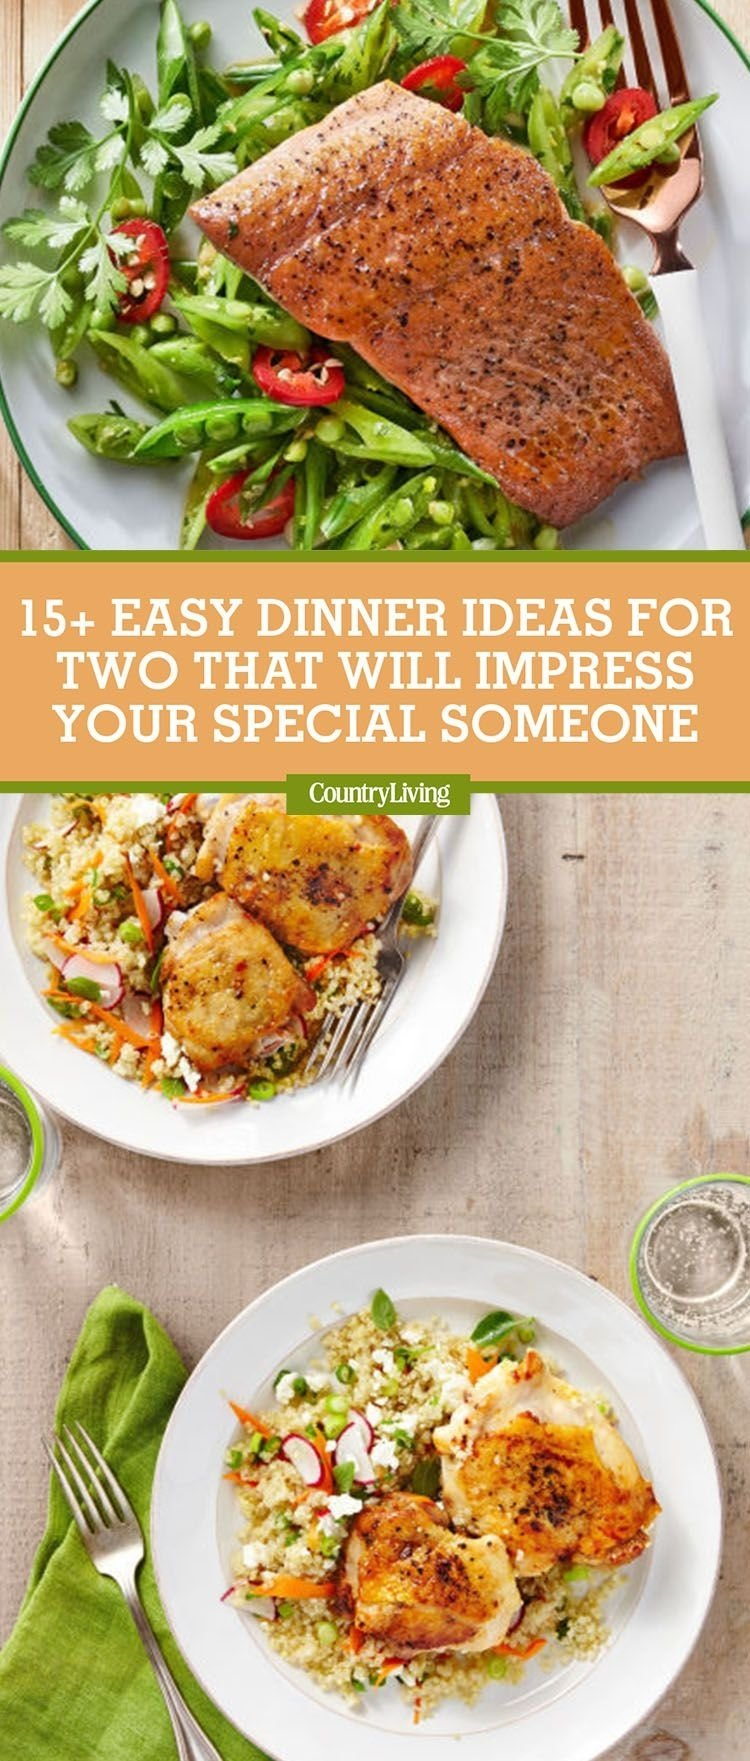 10 Gorgeous Easy Supper Ideas For Two 17 easy dinner ideas for two romantic dinner for two recipes 17 2020